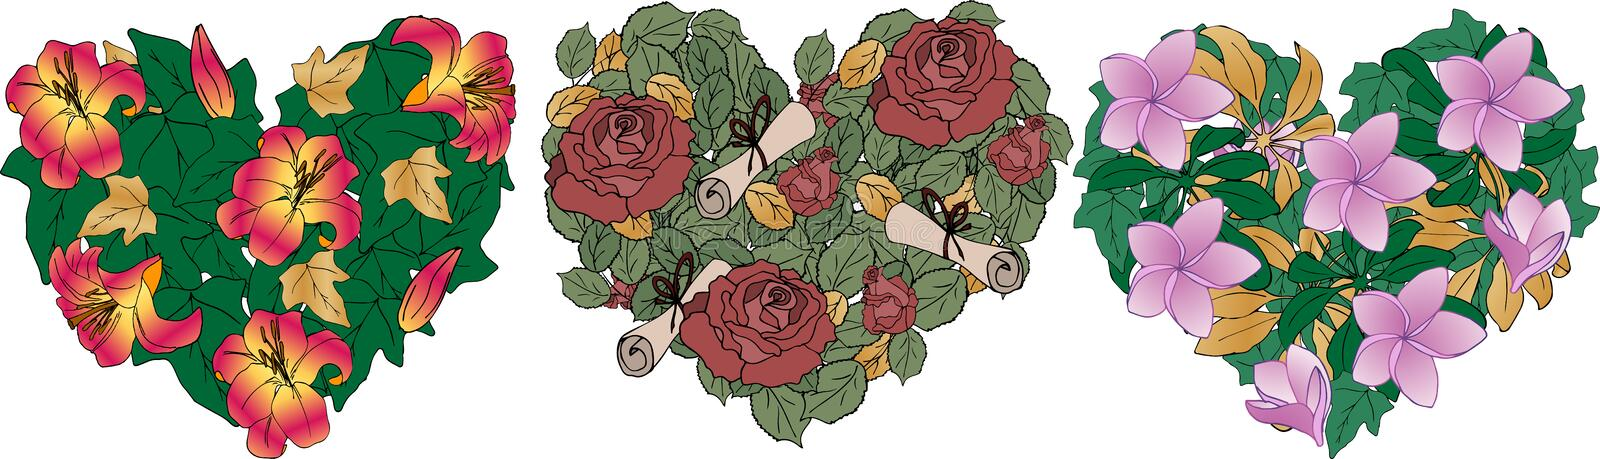 Hearts of flowers - lilies, roses, Magnolia with gold and green leaves. Vector. Can be used as a design element to a greeting card. For Valentine`s day royalty free illustration